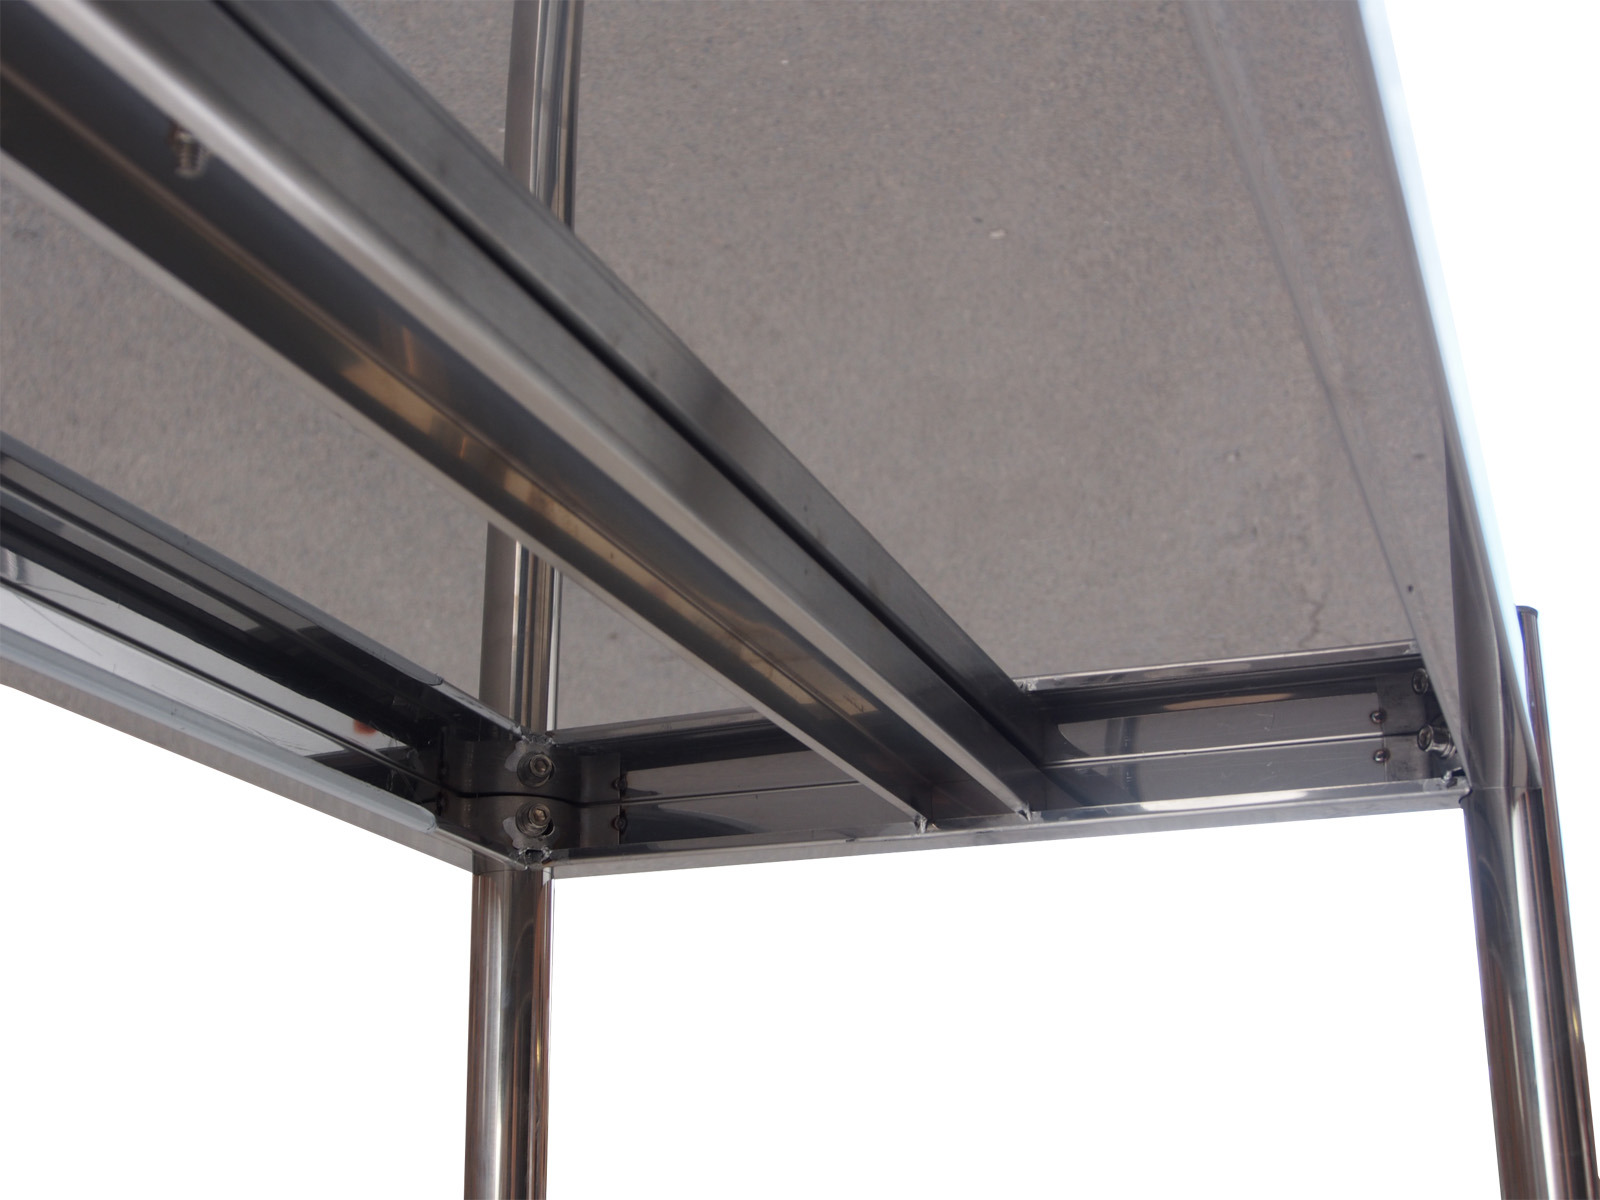 4 Tier 1800mm X 500mm Stainless Steel Shelf Unit Kitchen Shelving Display Unit